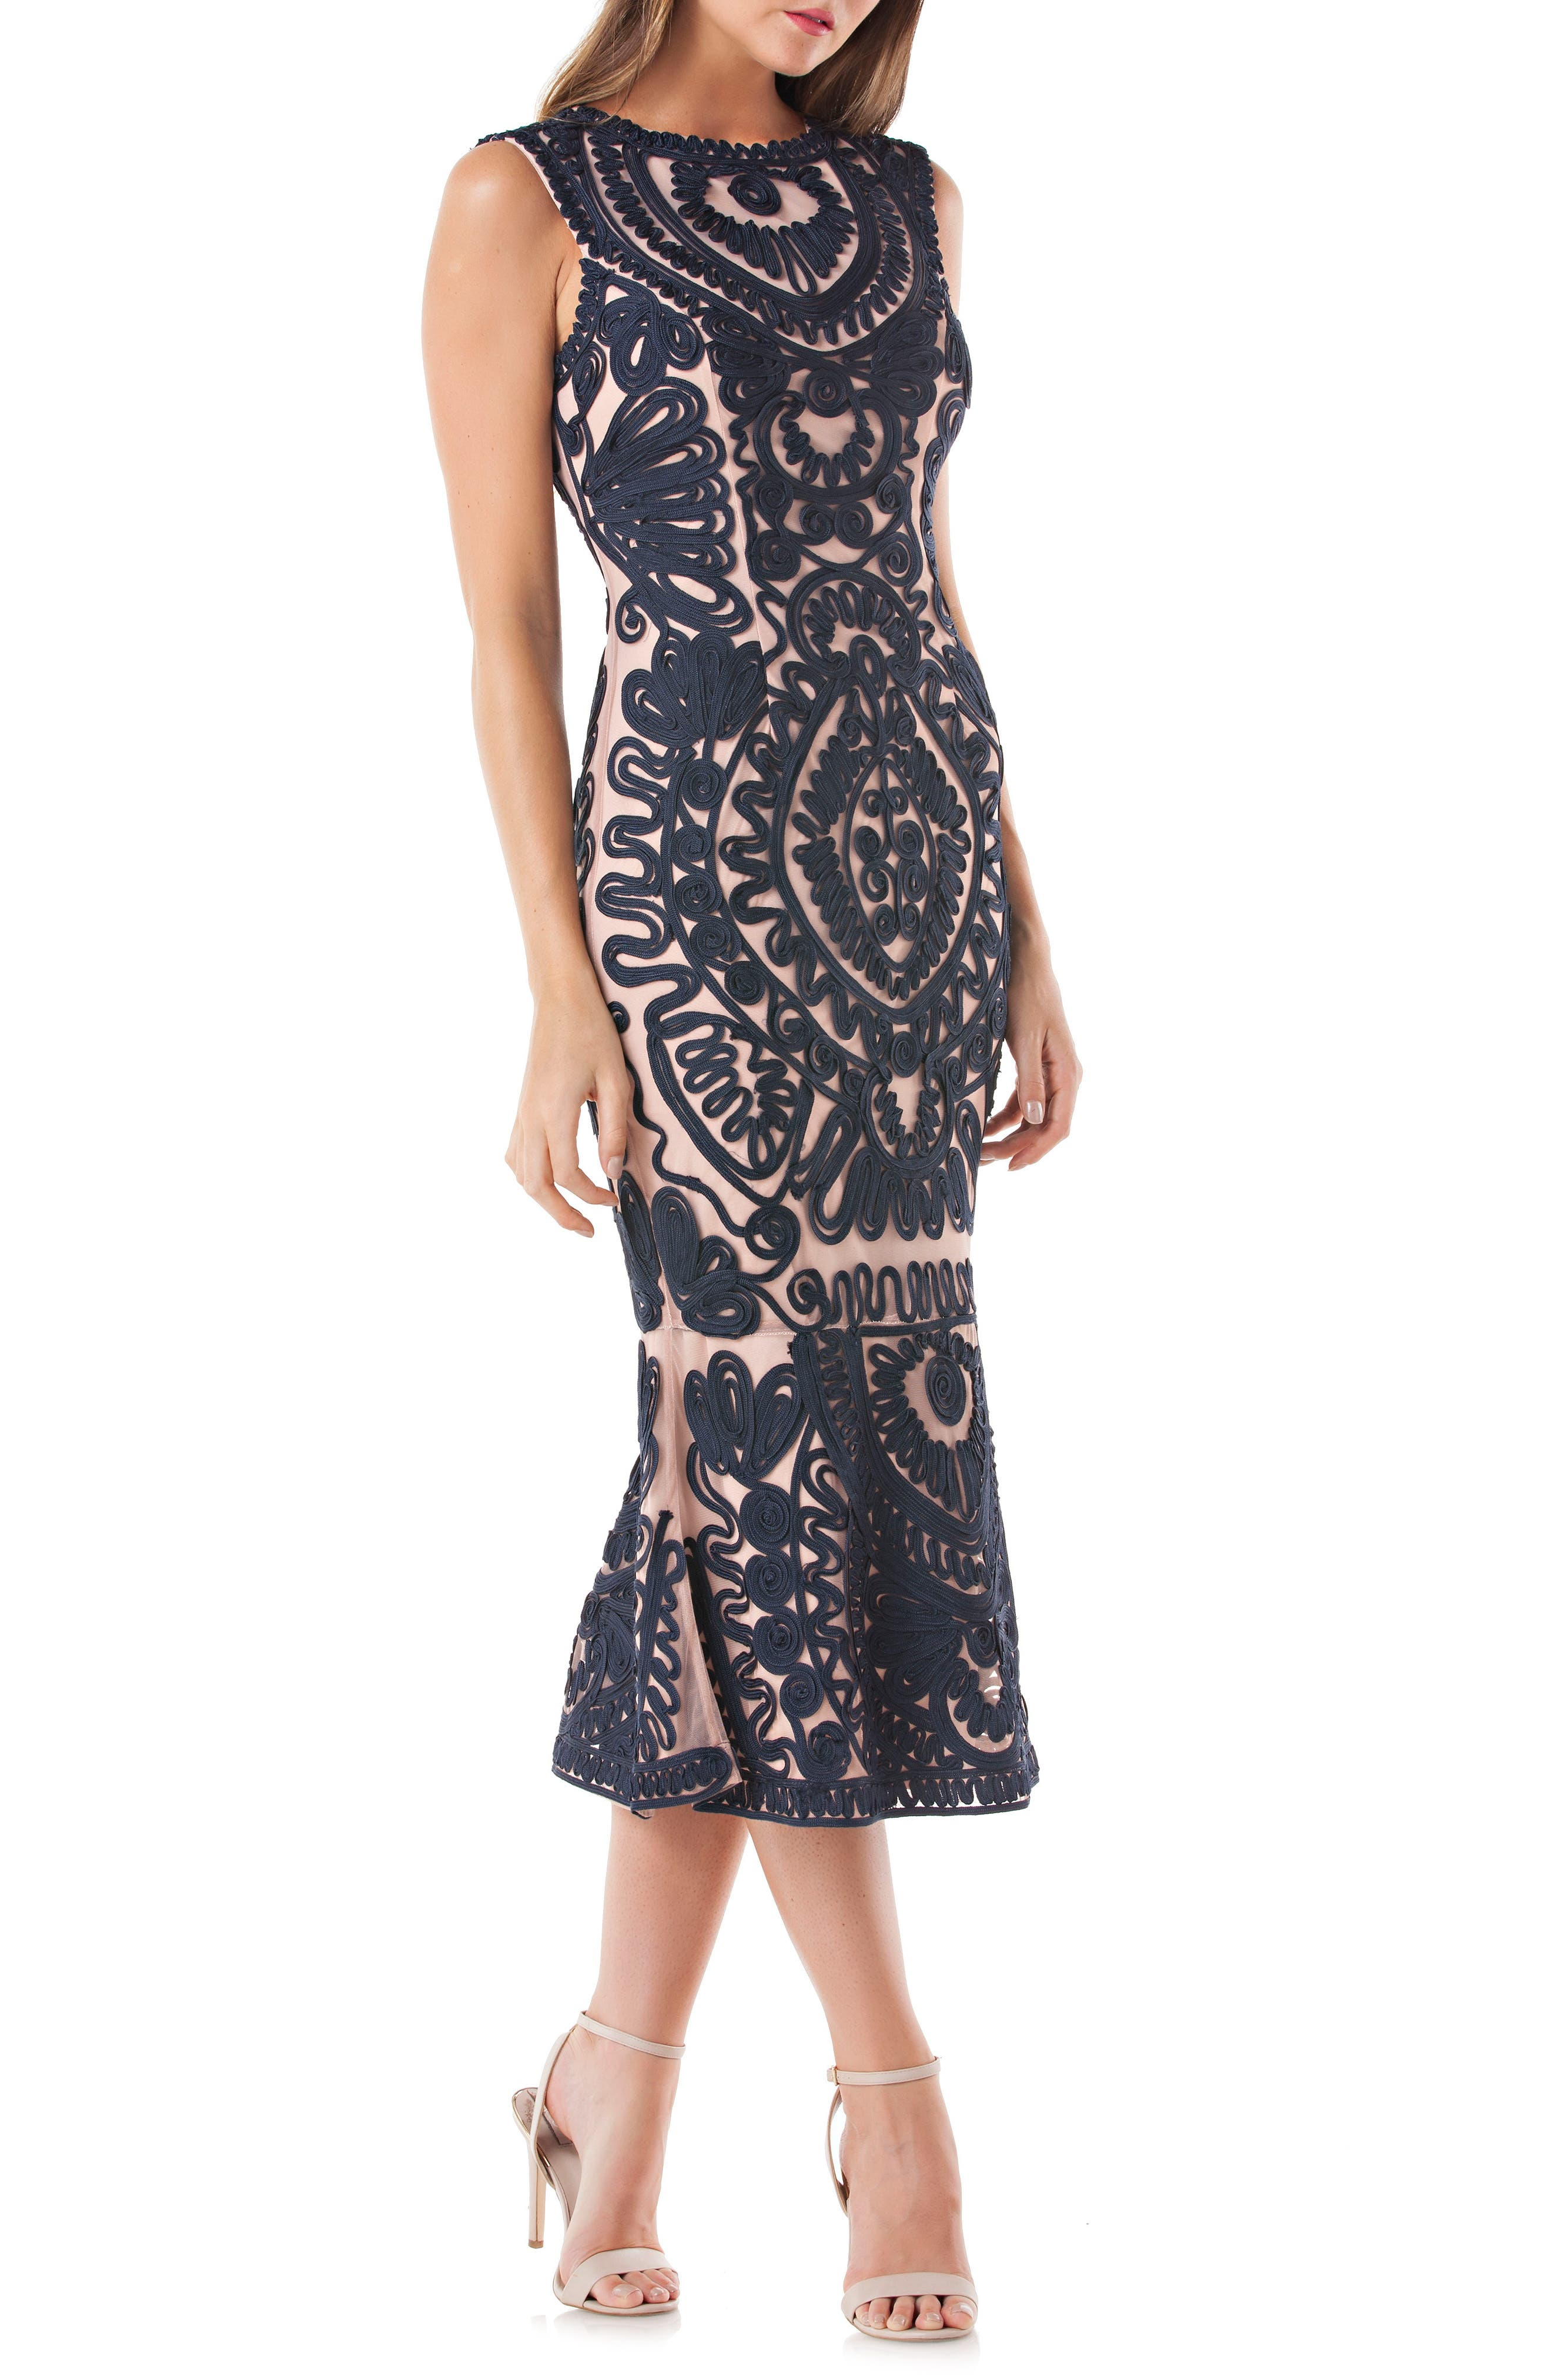 JS COLLECTIONS Soutache Mesh Dress, Main, color, NAVY/ NUDE